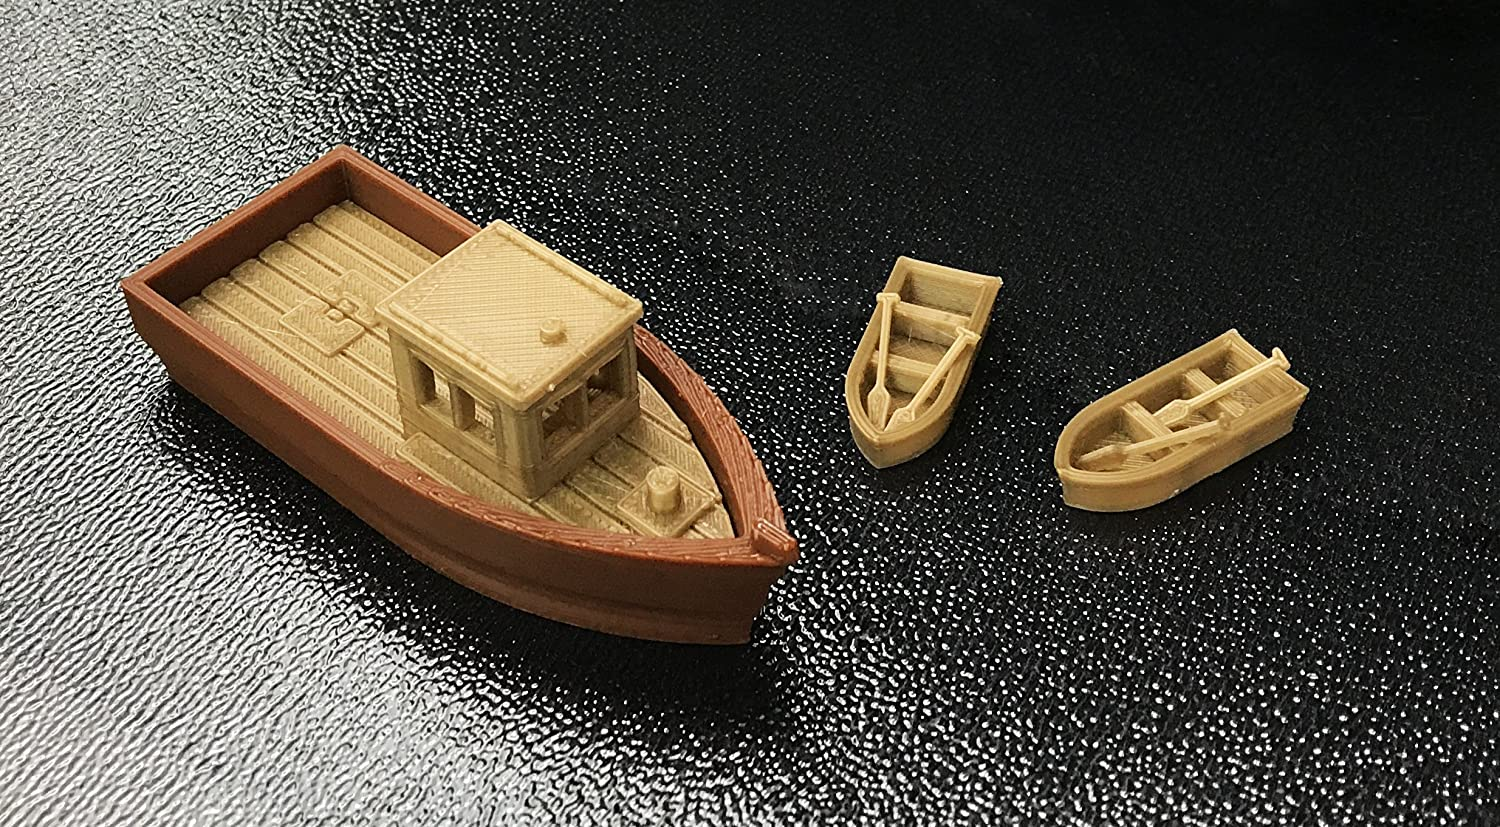 Outland Models Railroad Scenery Large Fishing Boat w 2 Small Boats HO Scale 1:87